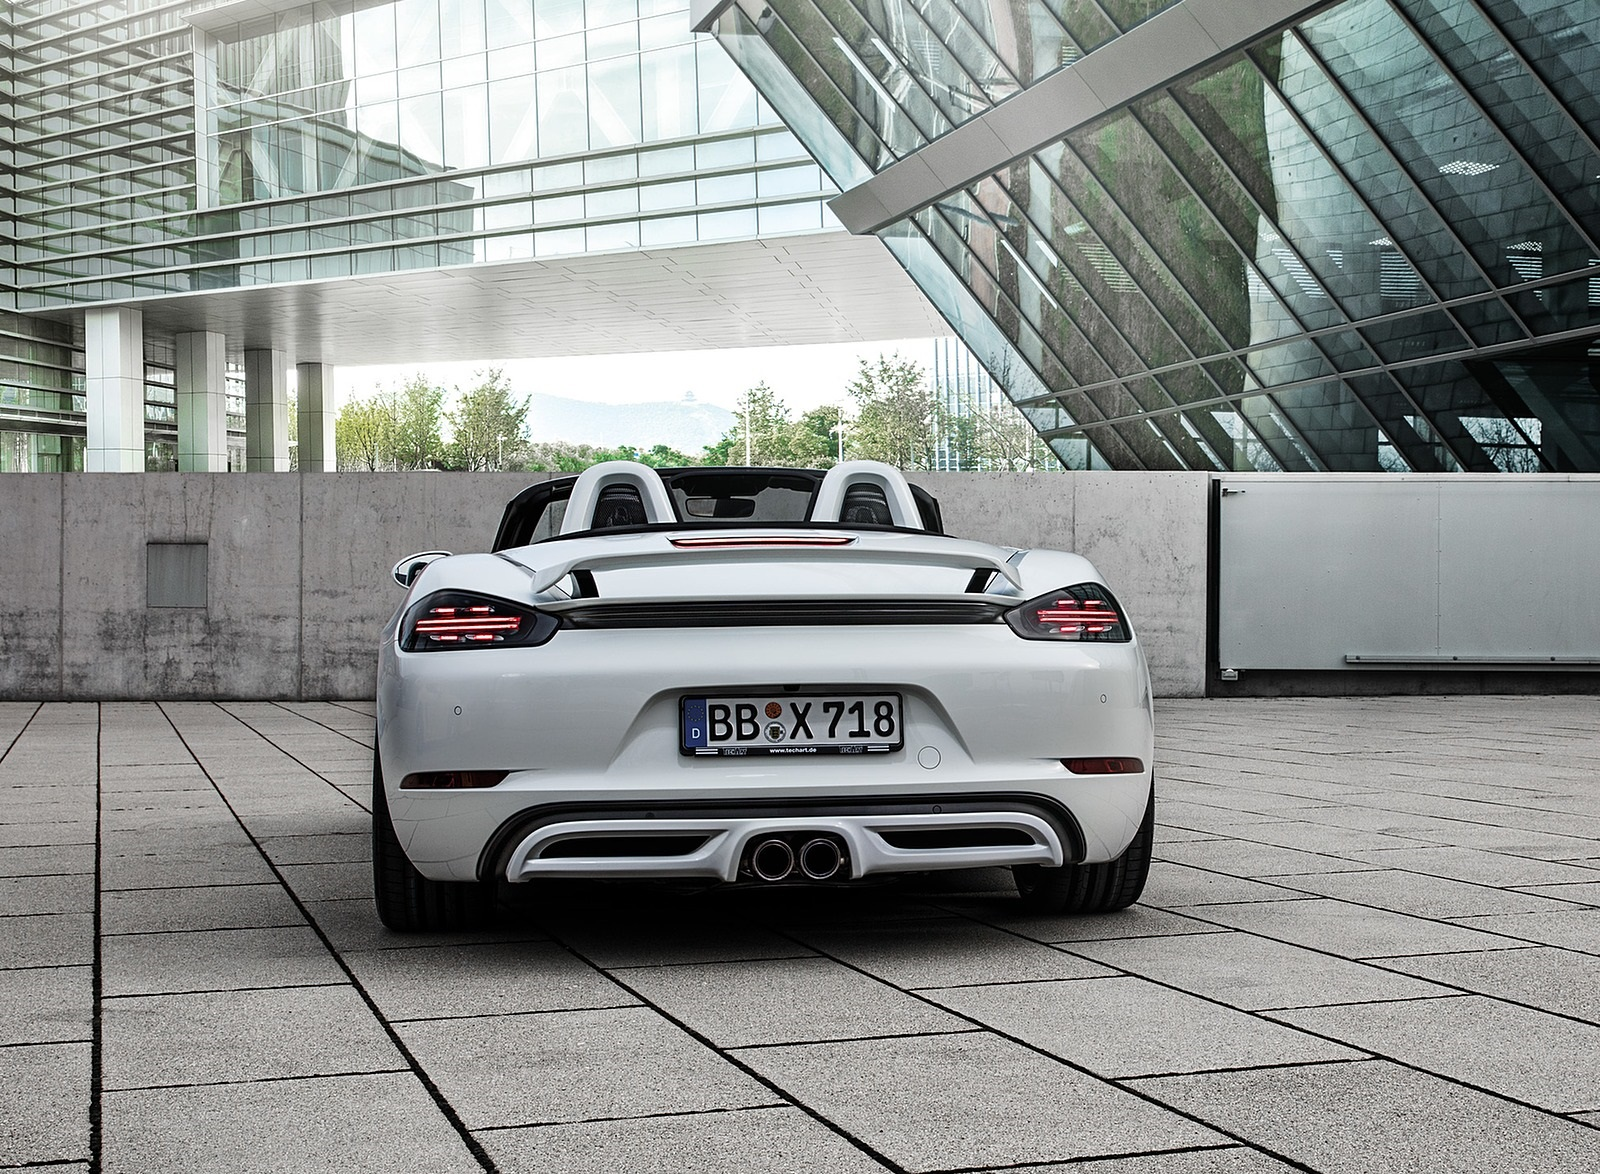 2019 TECHART Porsche 718 Boxster Rear Wallpapers (10)